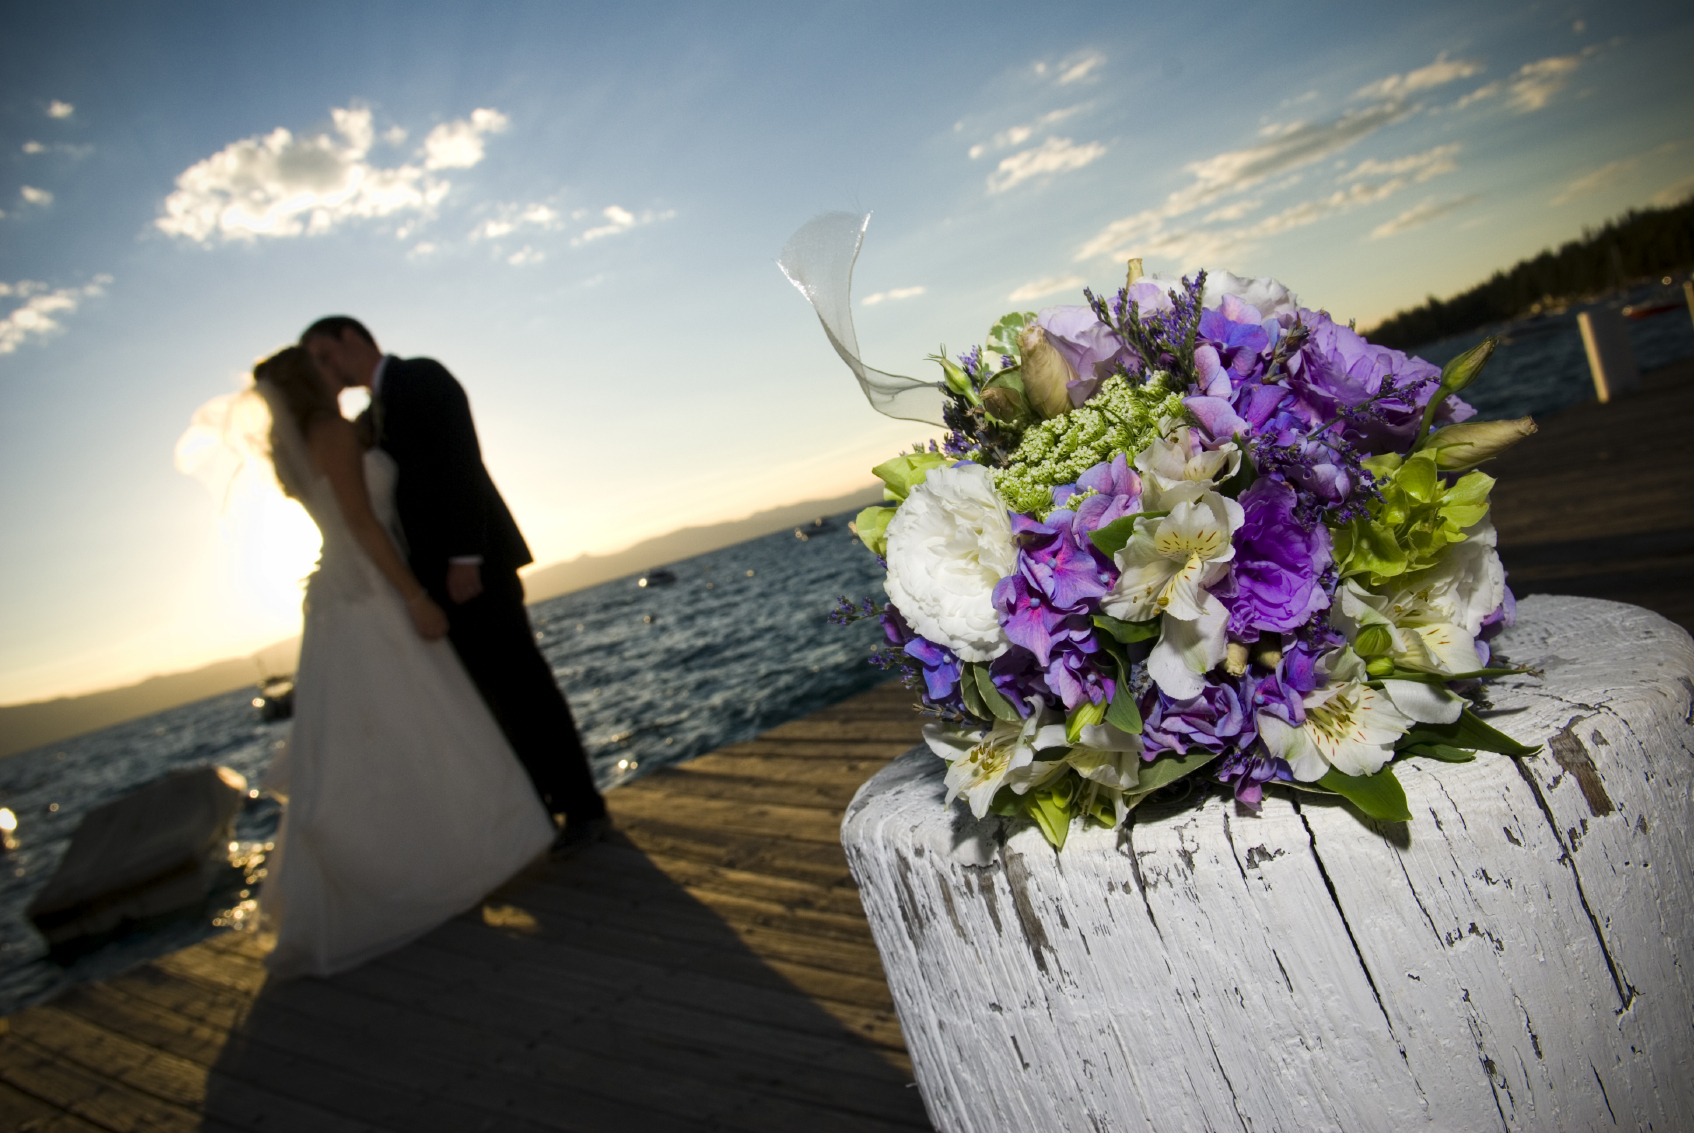 Wedding Recessional Songs Piano: Wedding Recessional Music